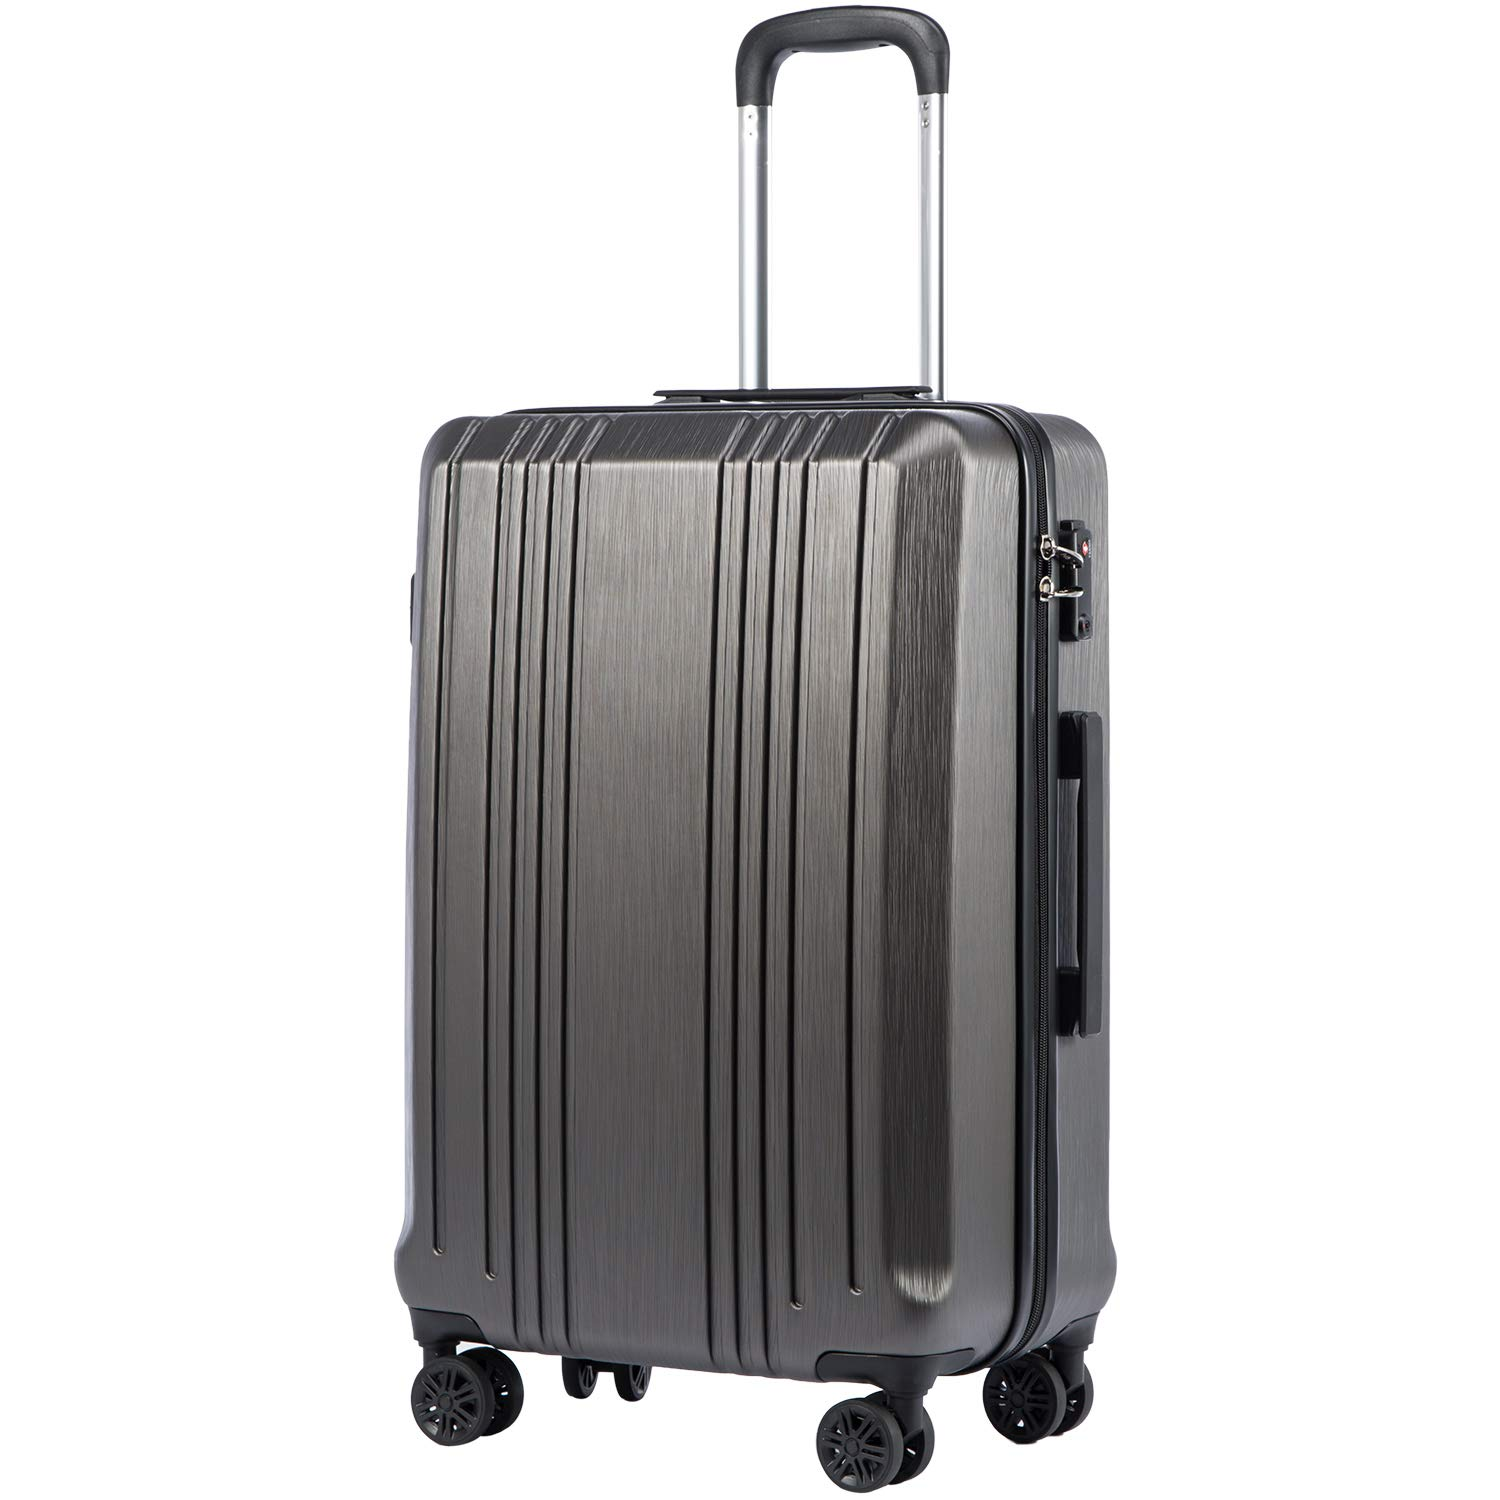 Coolife Luggage Expandable Suitcase PC+ABS with TSA Lock Spinner 20in 24in 28in (grey, L(28IN))